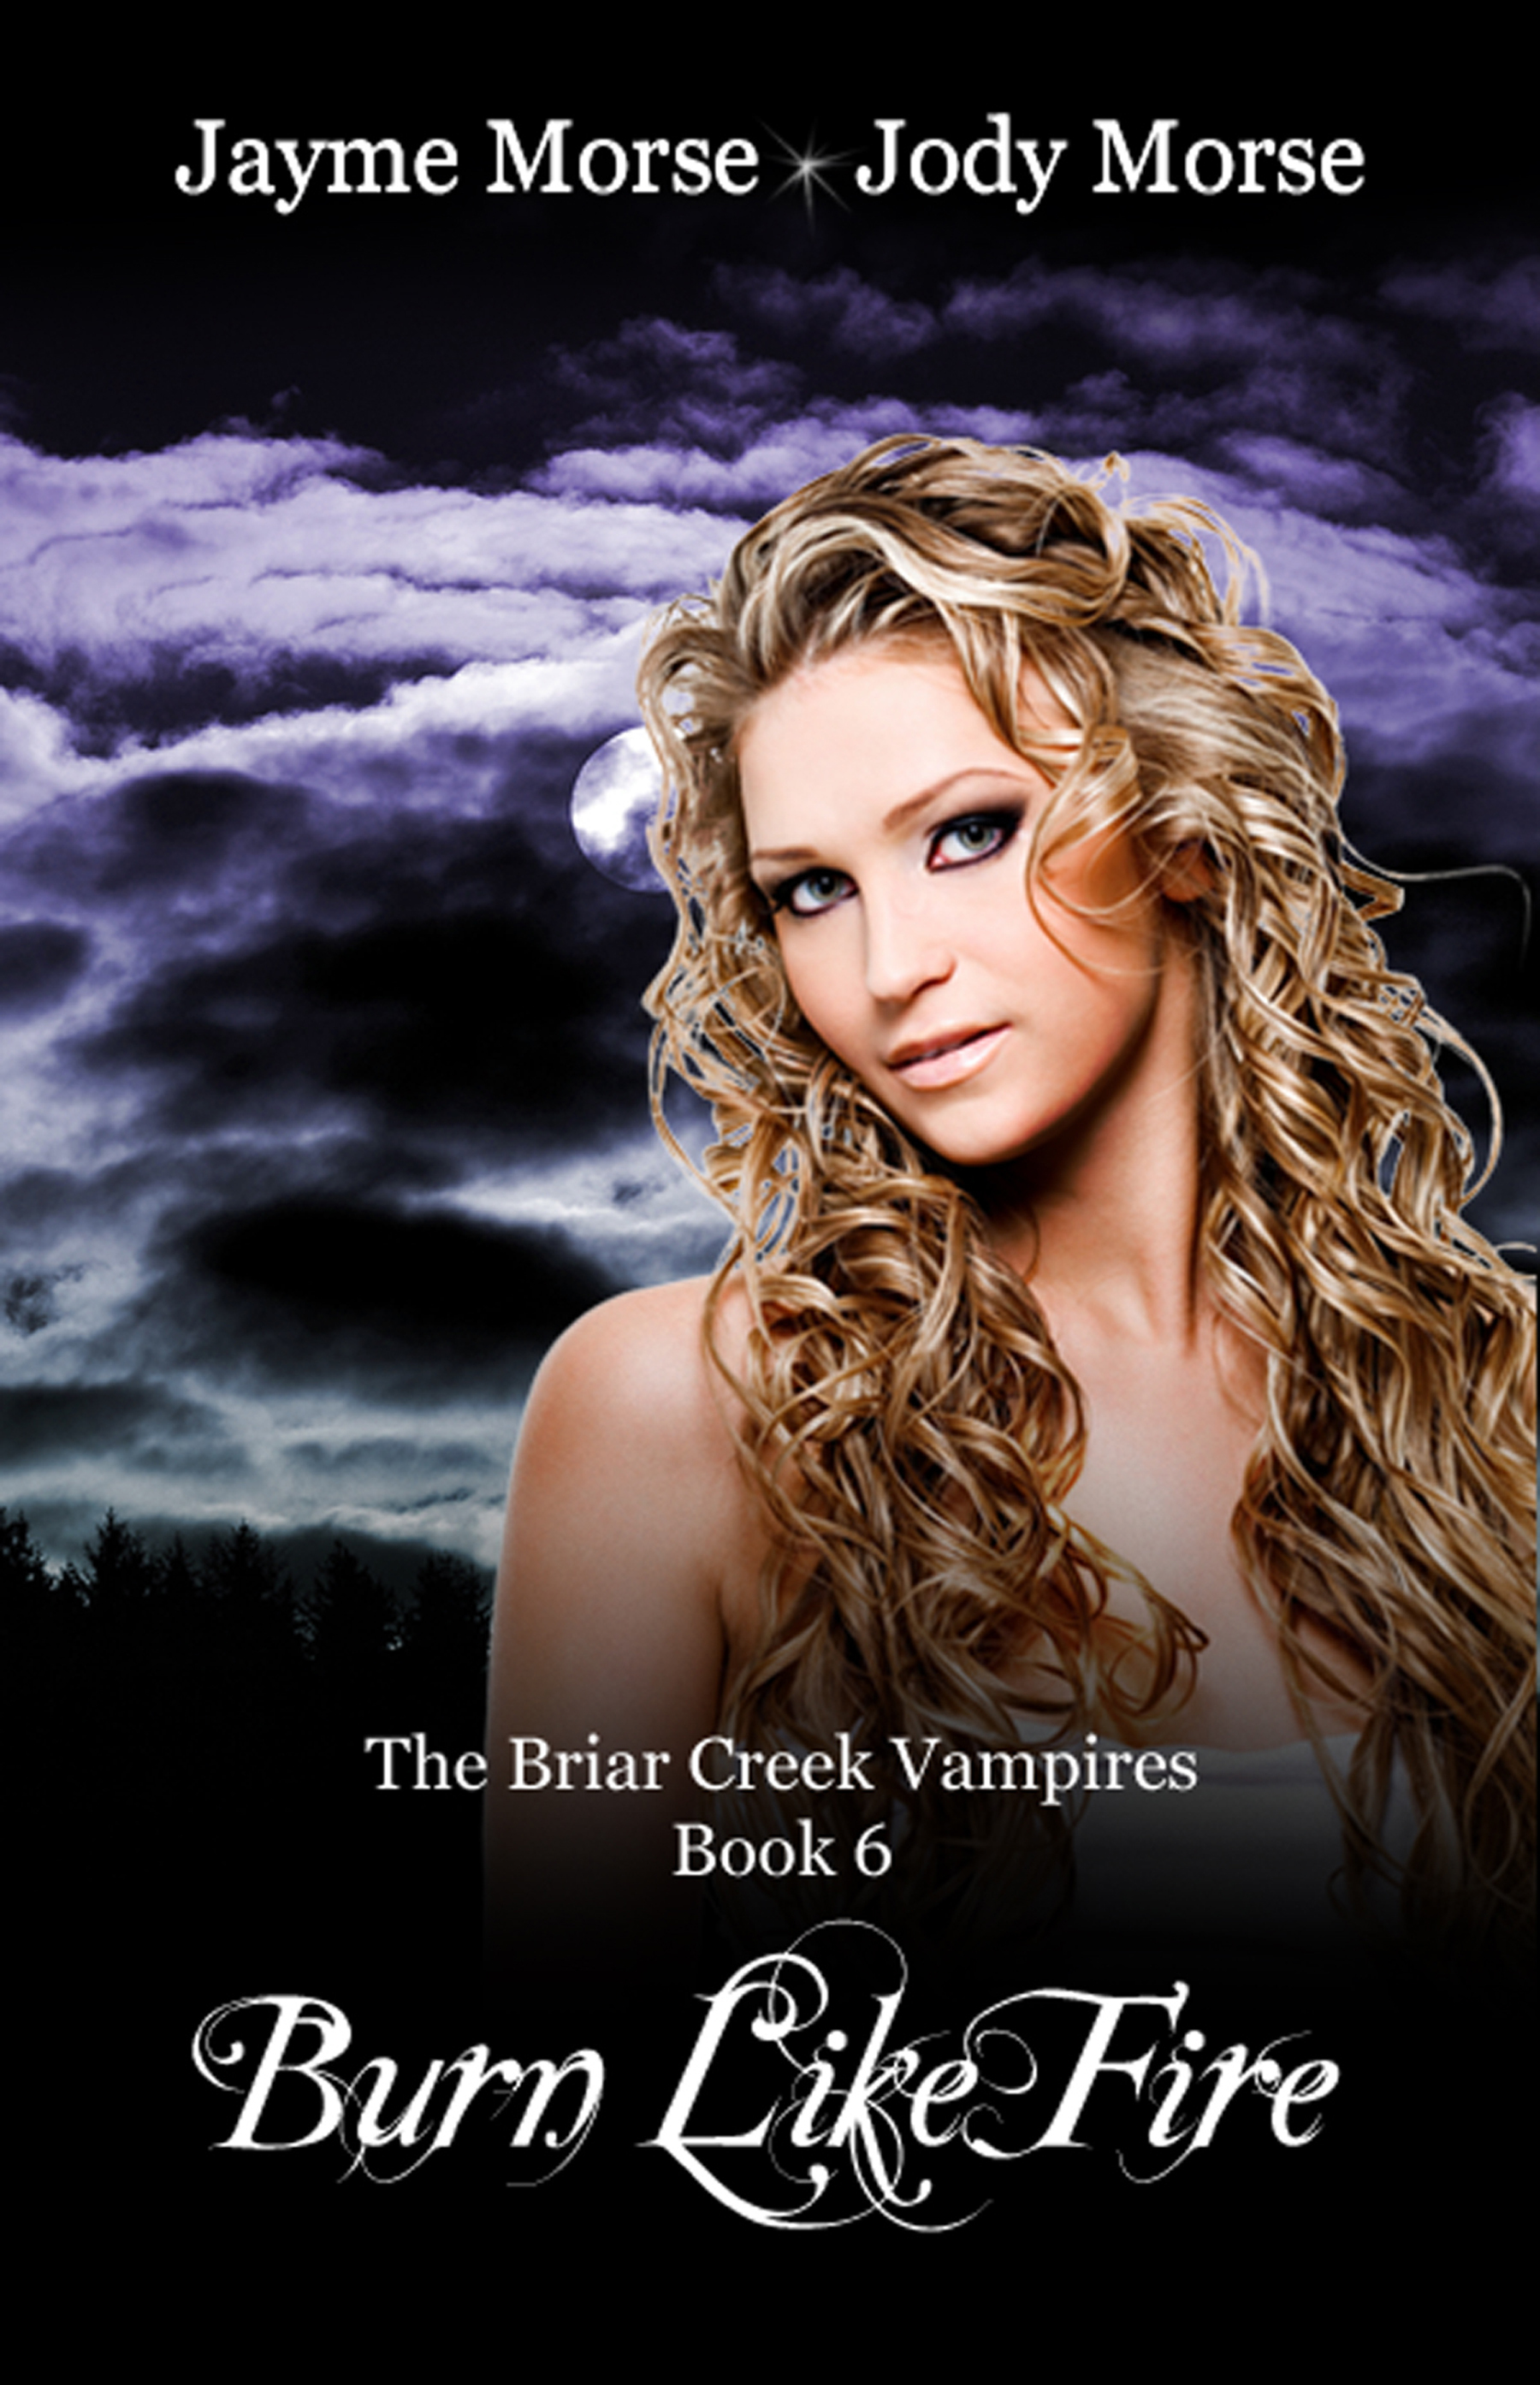 Burn Like Fire (The Briar Creek Vampires, #6) by Jayme Morse & Jody Morse